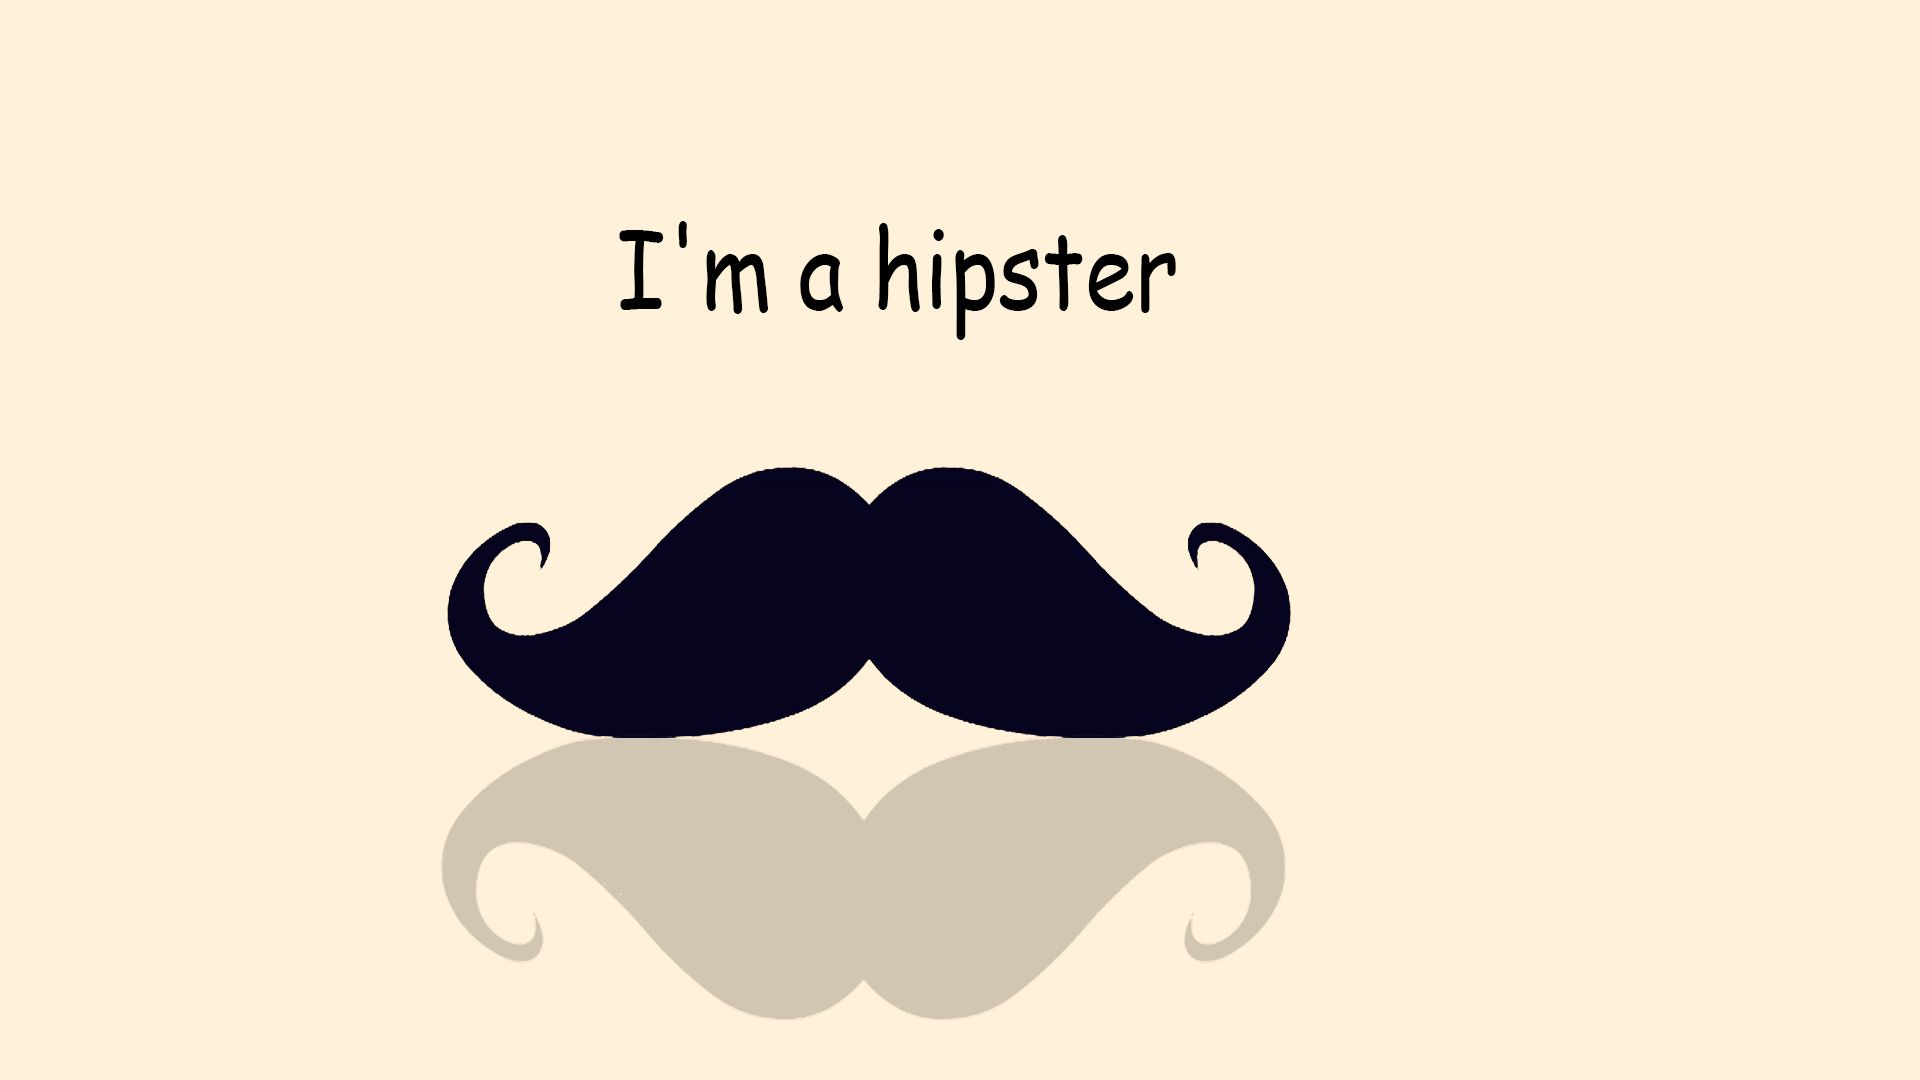 Wallpaper Mustache Hipster By Horaciogfx On Deviantart Hipster Wallpaper Mustache Wallpaper Hipster Background